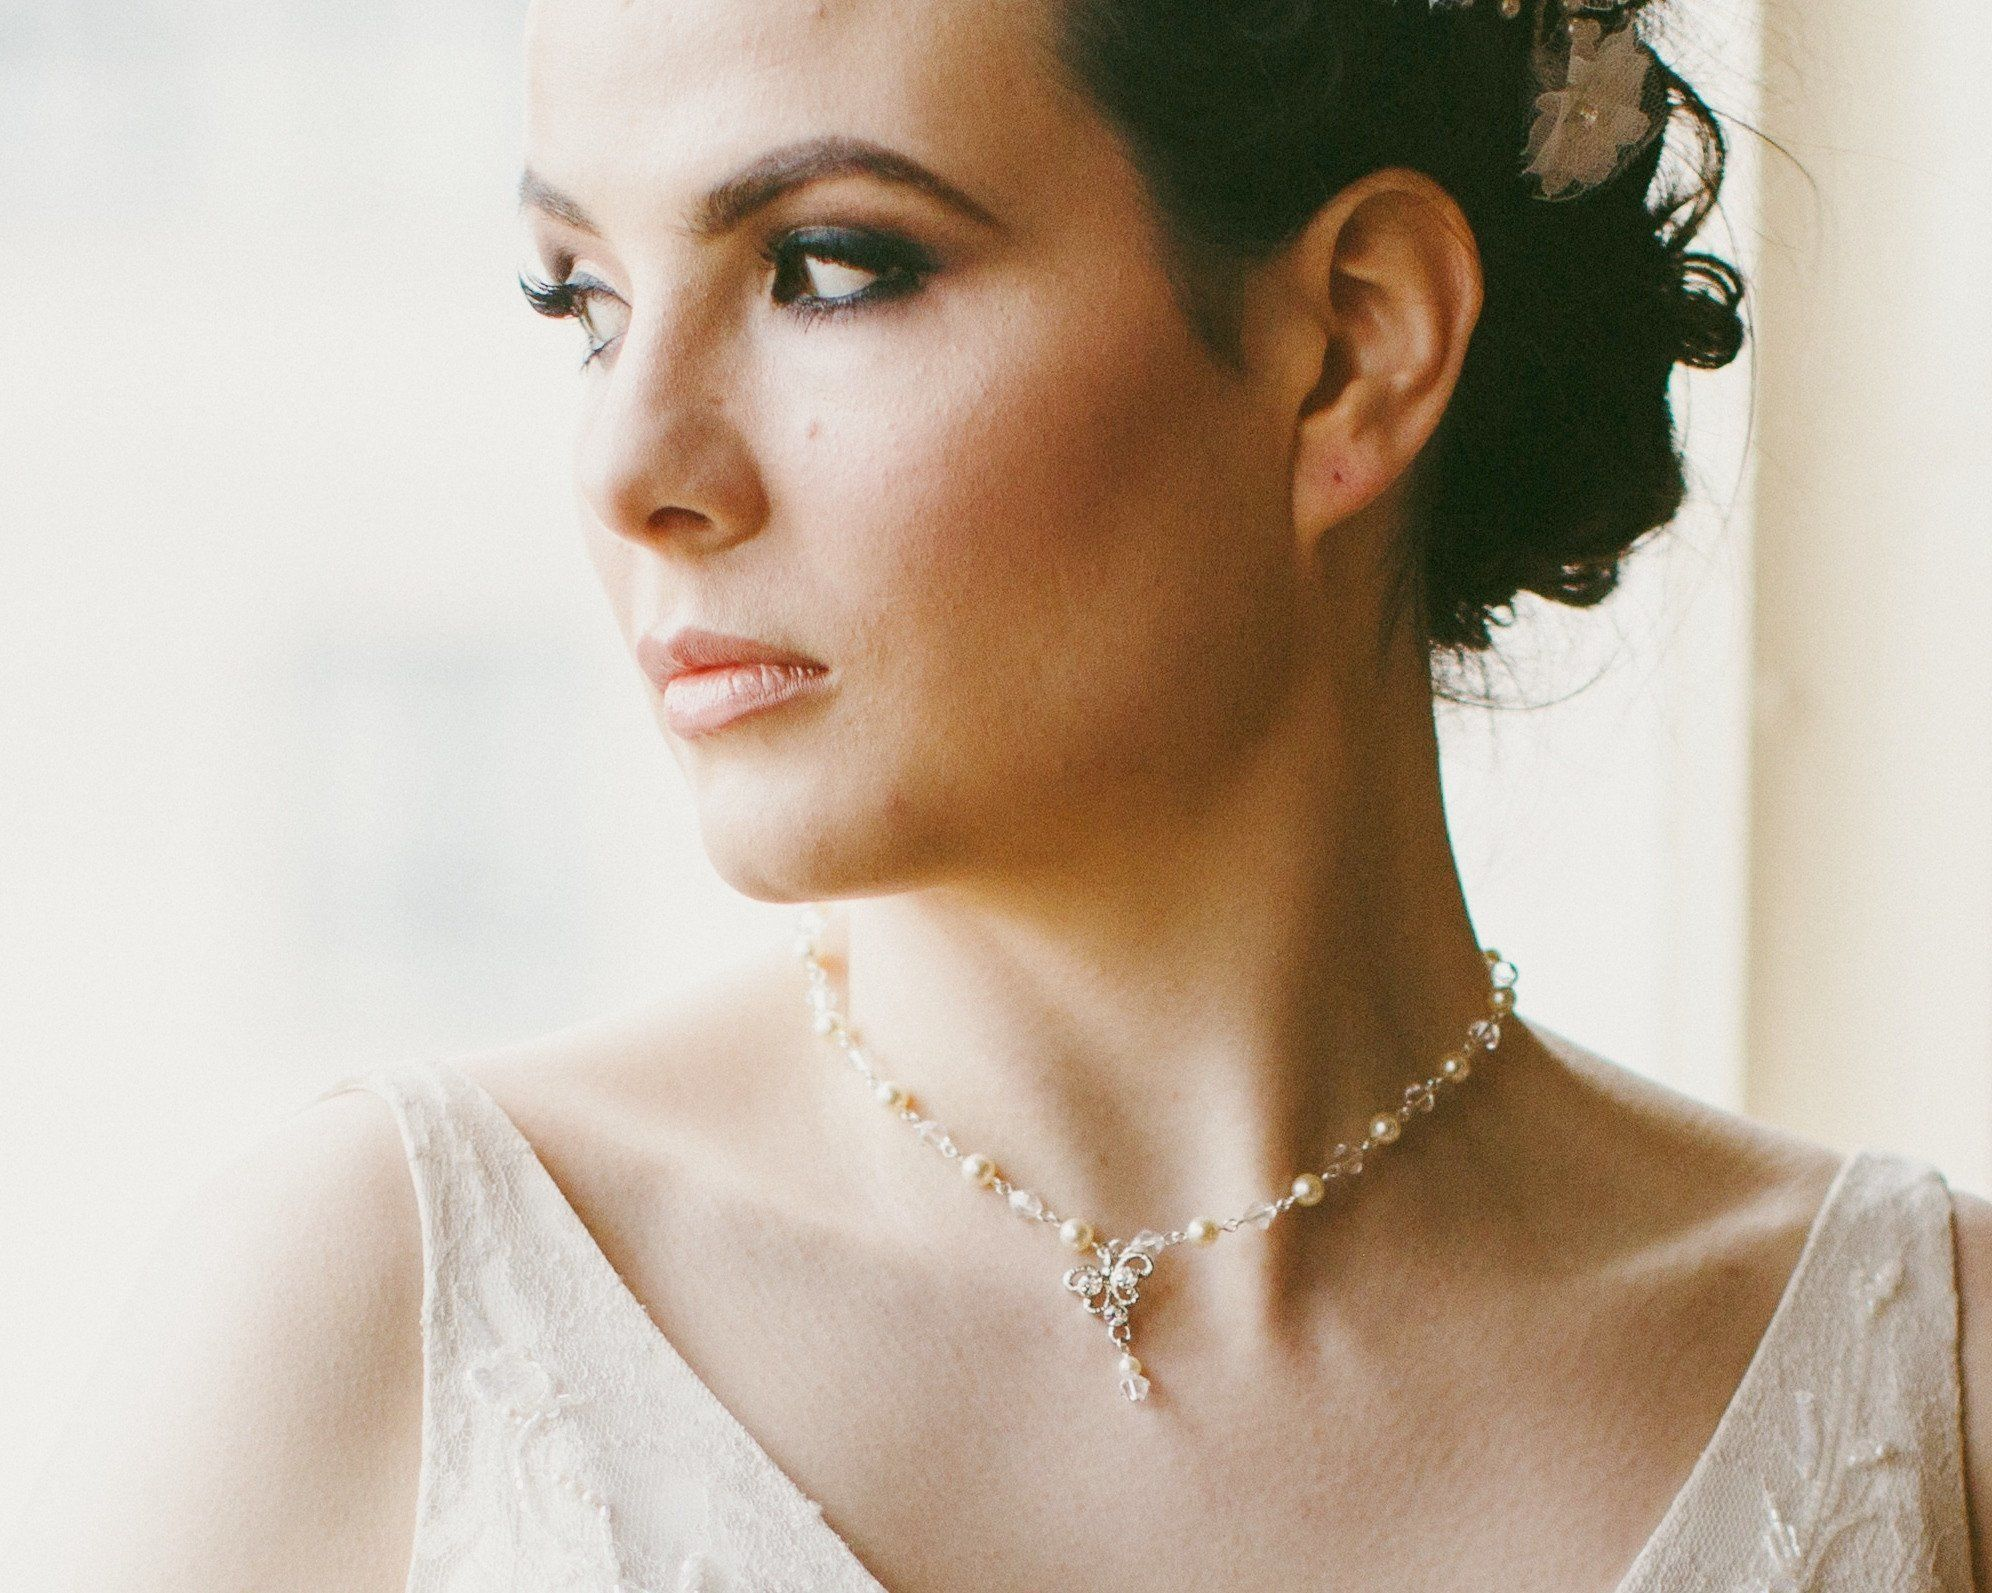 Wedding Necklace - Wedding Vintage Inspired Necklace With Backdrop, Lydia